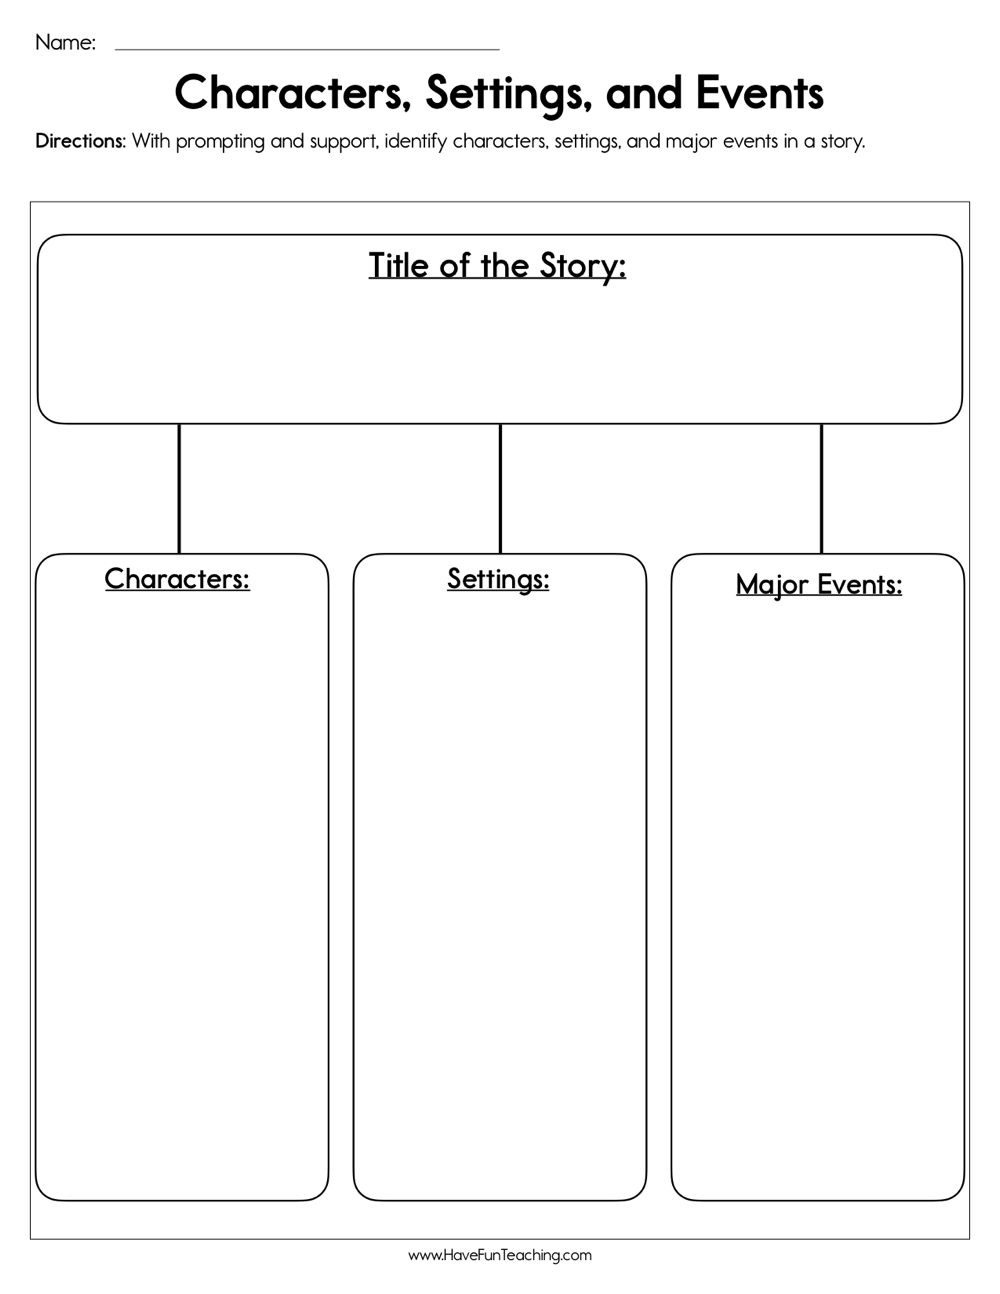 Characters Settings And Events Worksheet Character Worksheets Story Elements Worksheet Have Fun Teaching